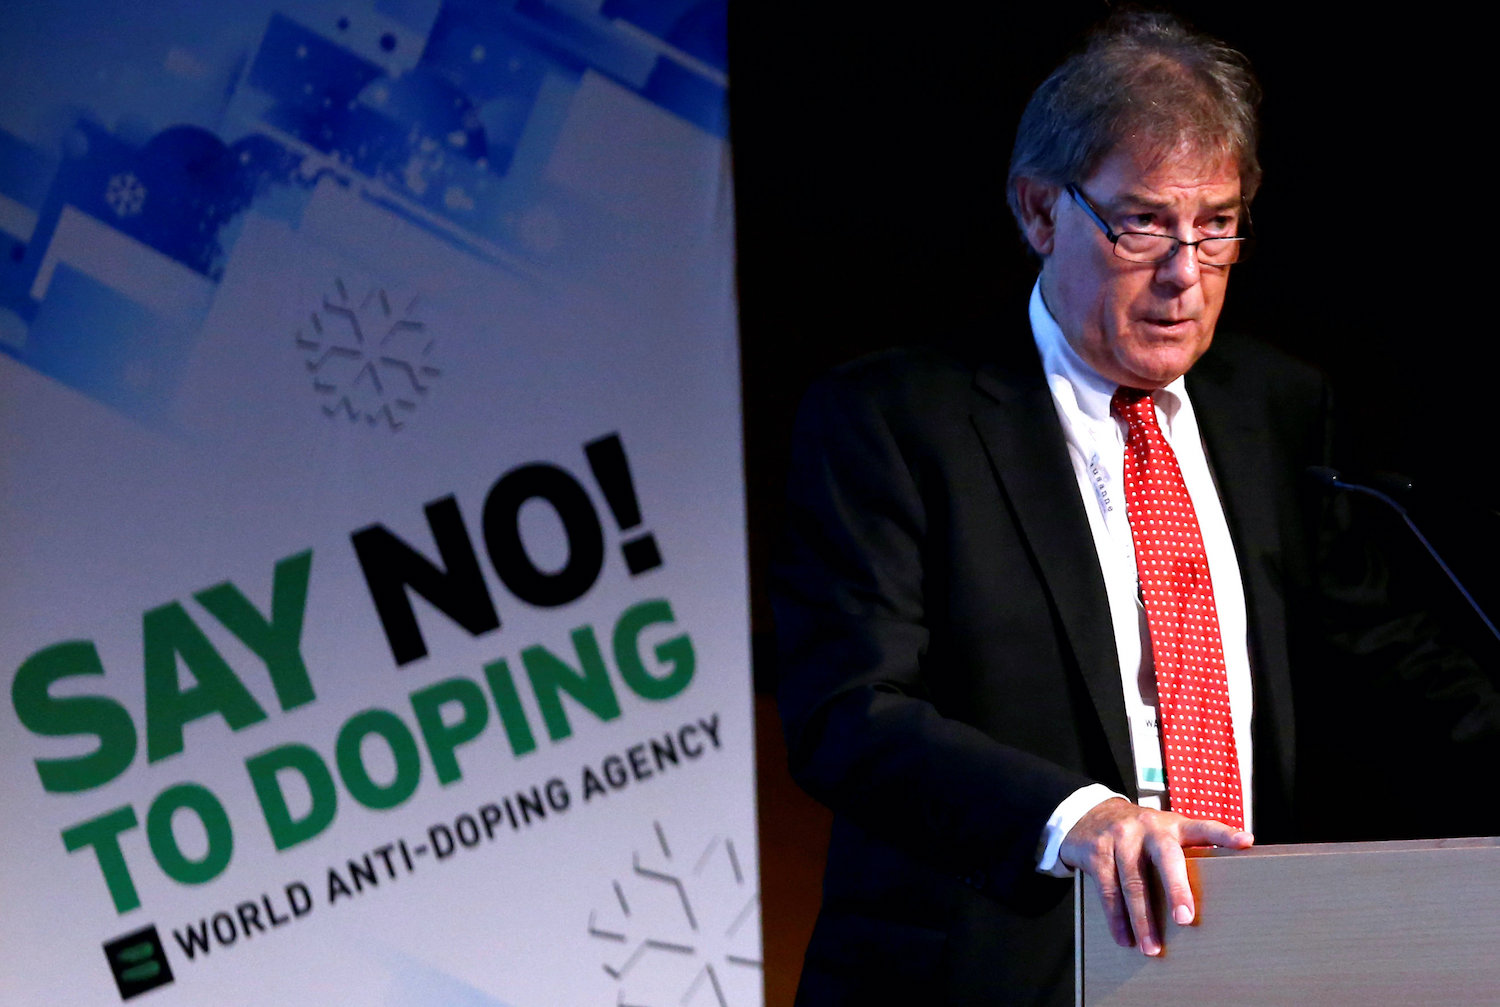 David Howman, former director-general of the World Anti-Doping Agency, addresses a symposium in Lausanne, Switzerland in 2015, shortly after the new World Anti-Doping Code came into effect. (Reuters File Photo)